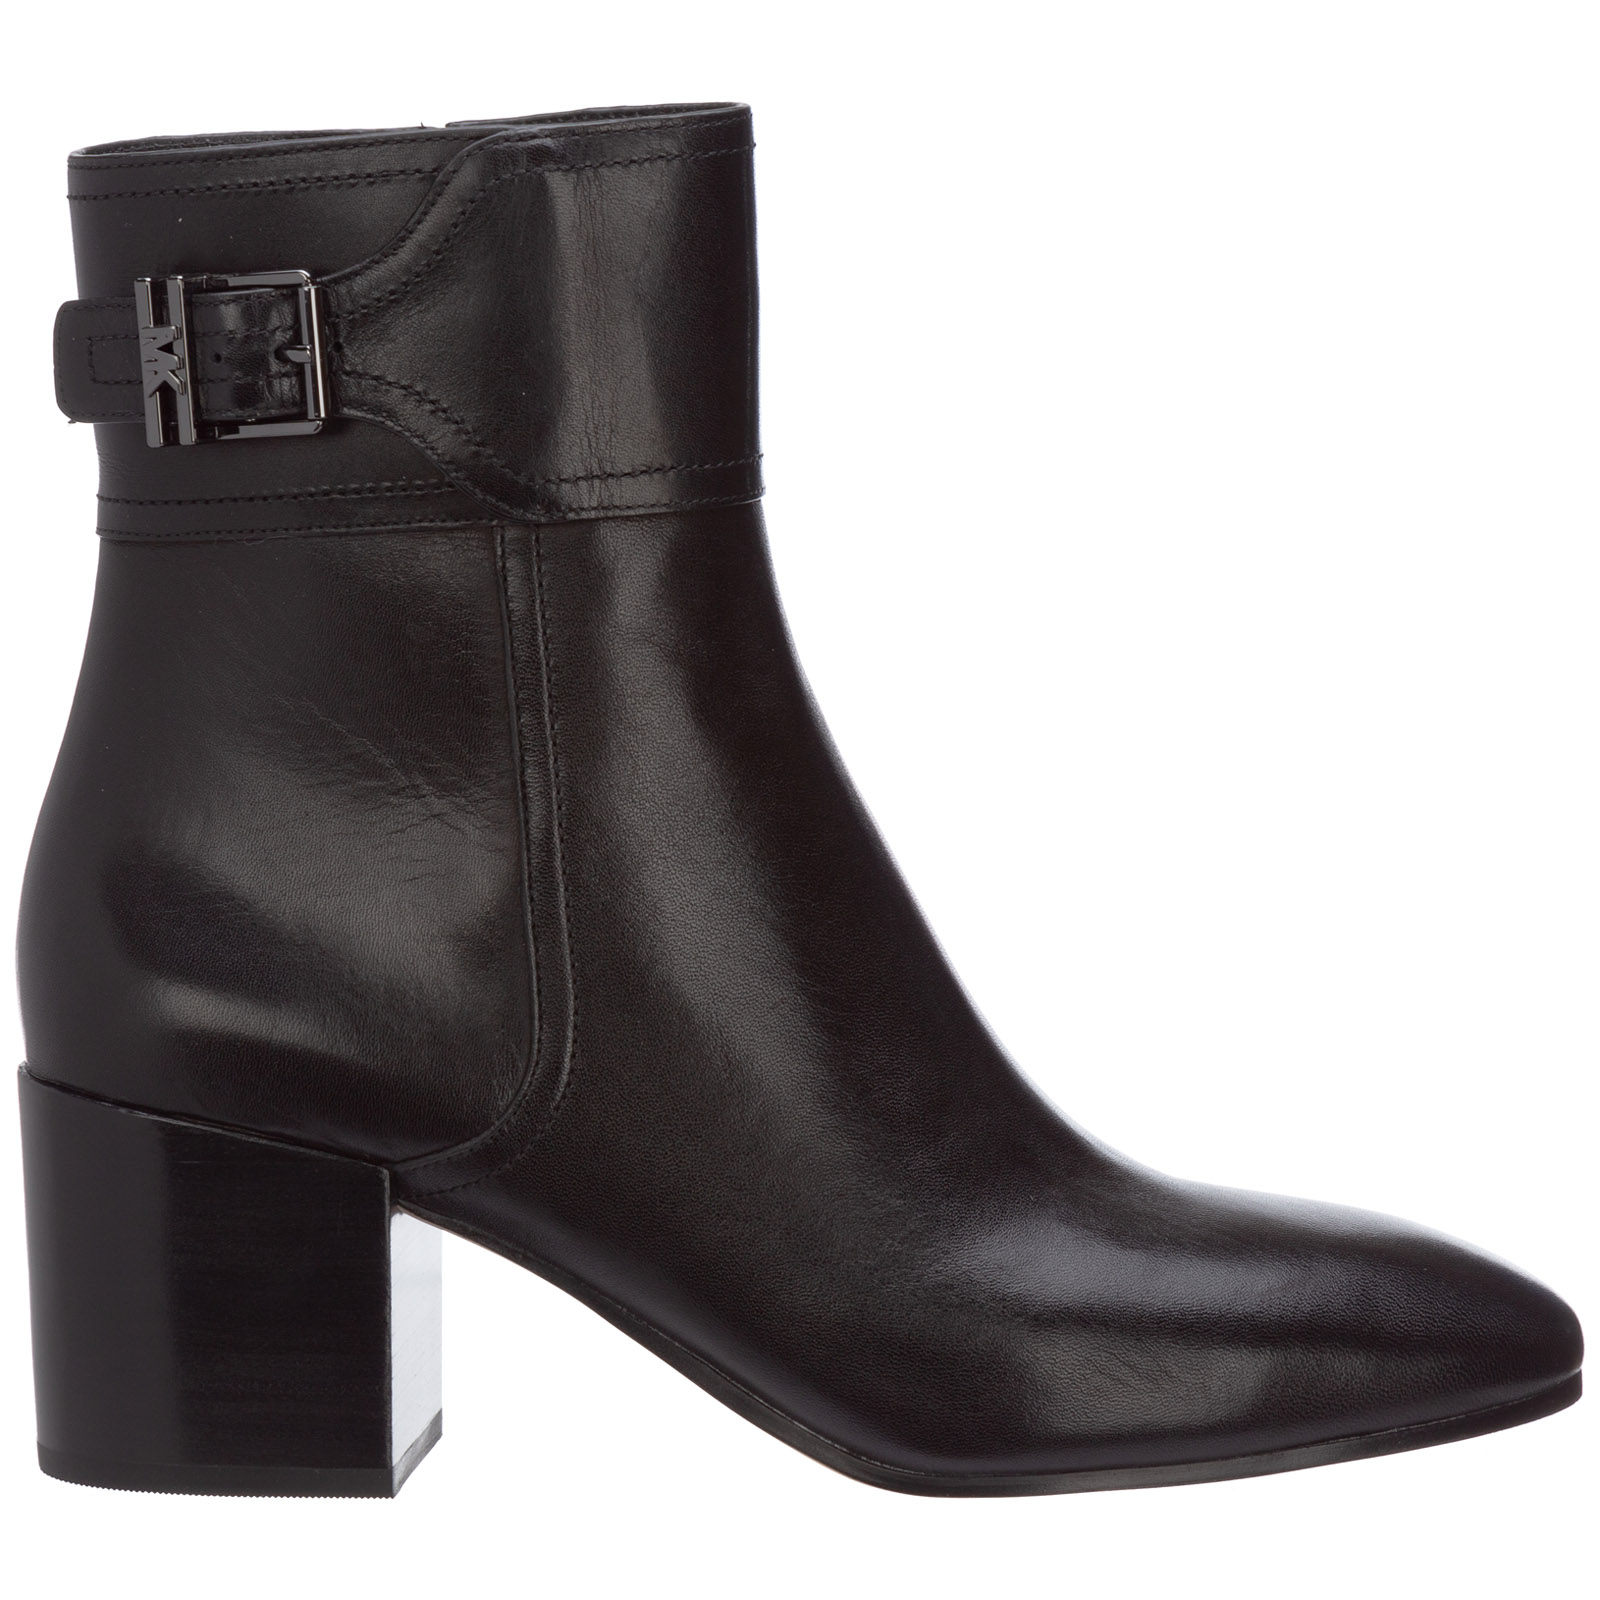 Michael Kors WOMEN'S LEATHER HEEL'ANKLE BOOTS BOOTIES KENYA